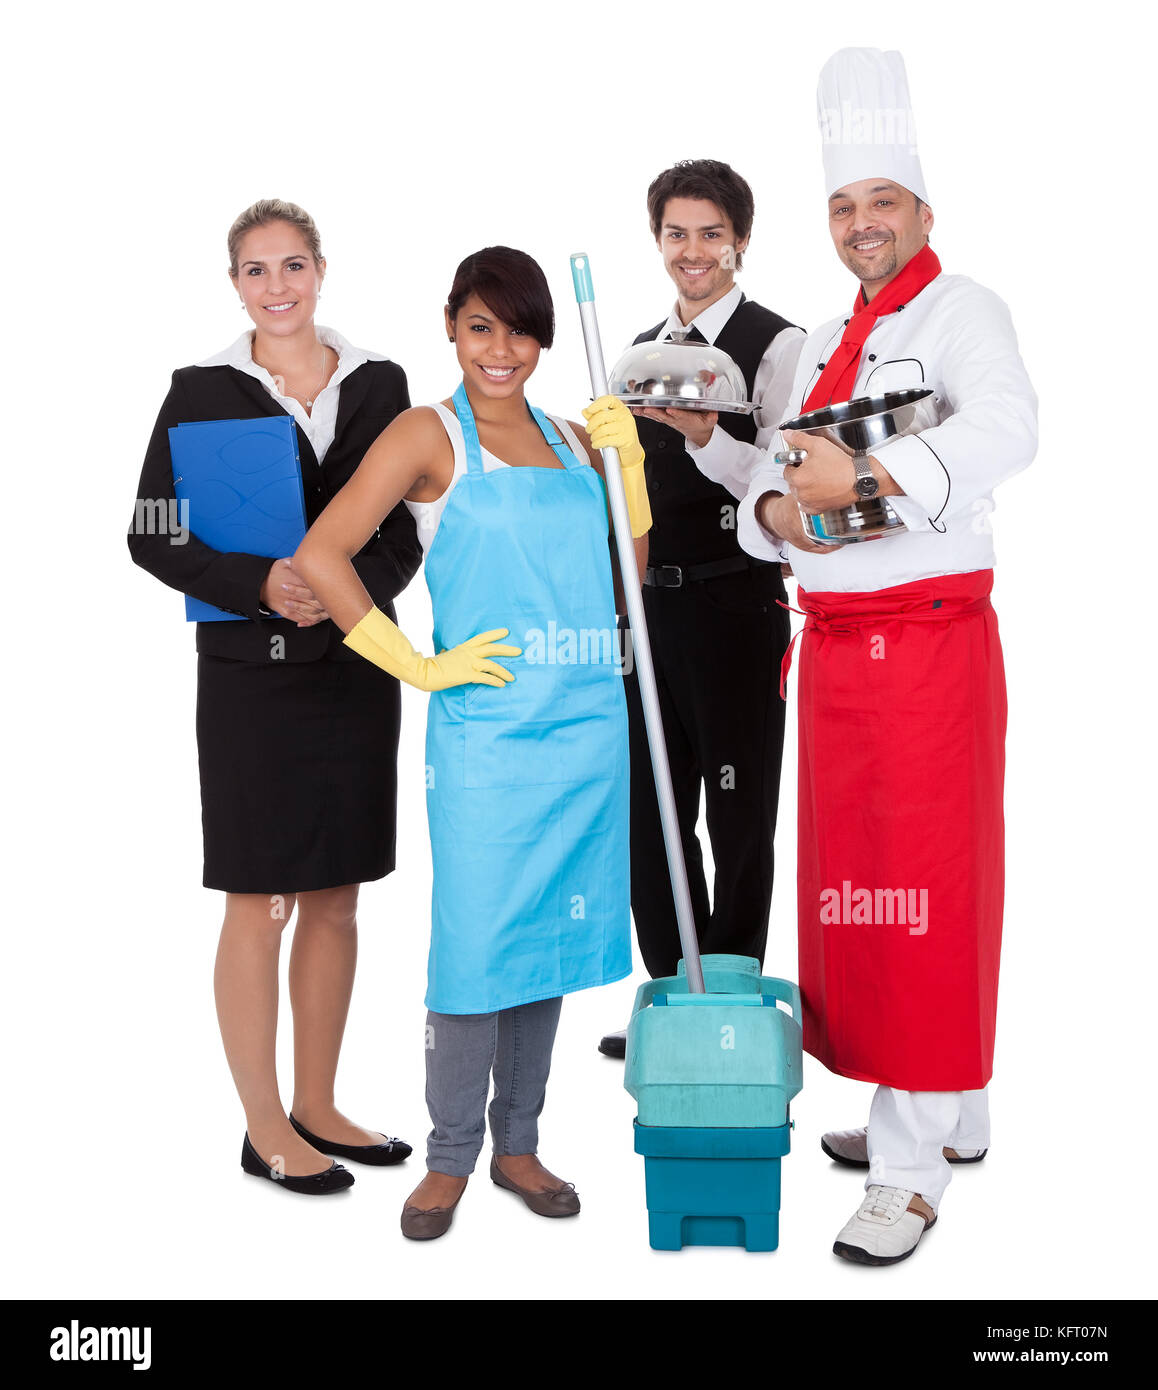 Diverse group of smiling workers. Isolated on white - Stock Image